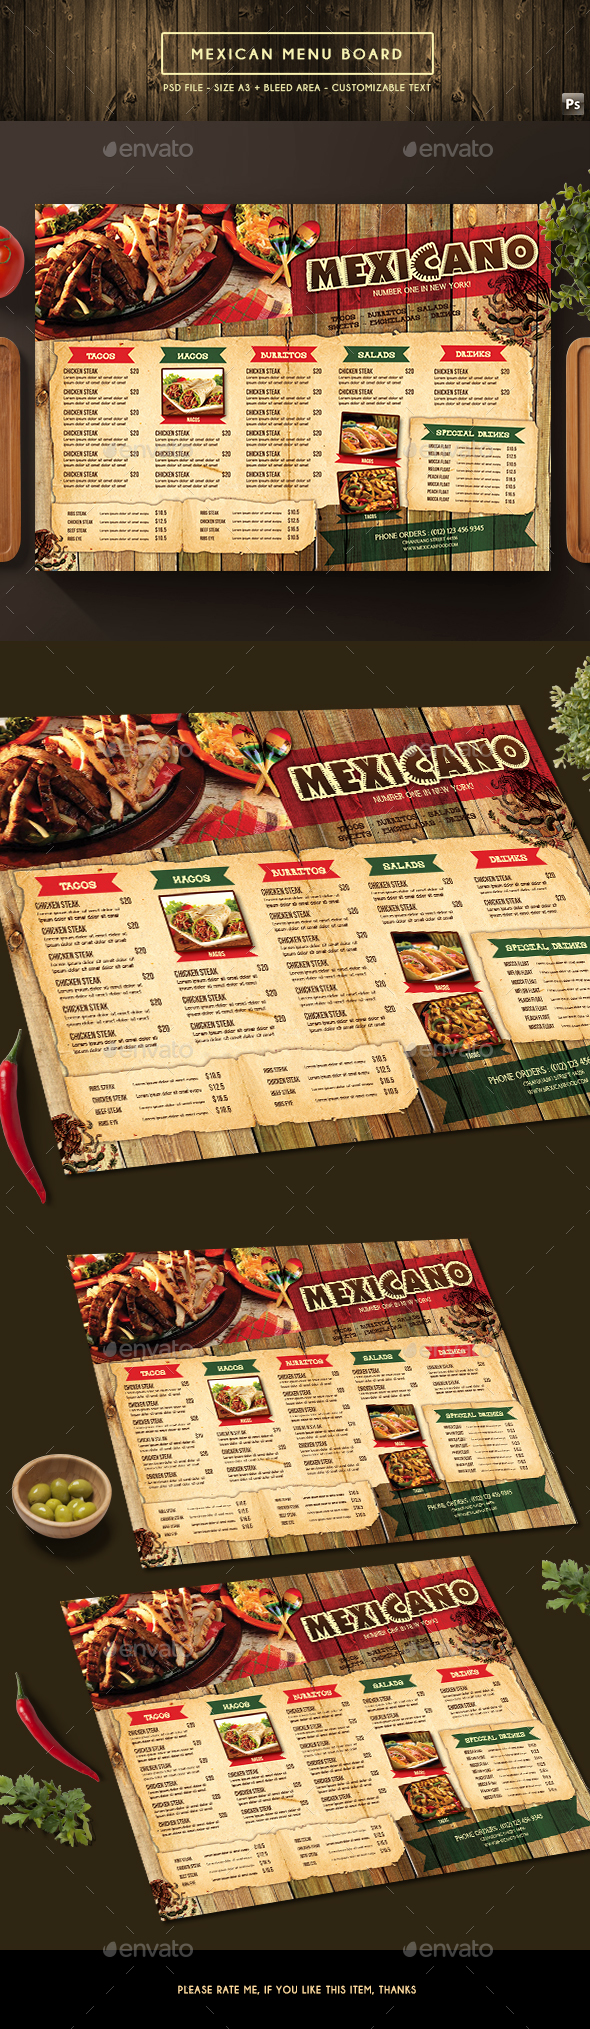 Mexican Menu Board - Food Menus Print Templates